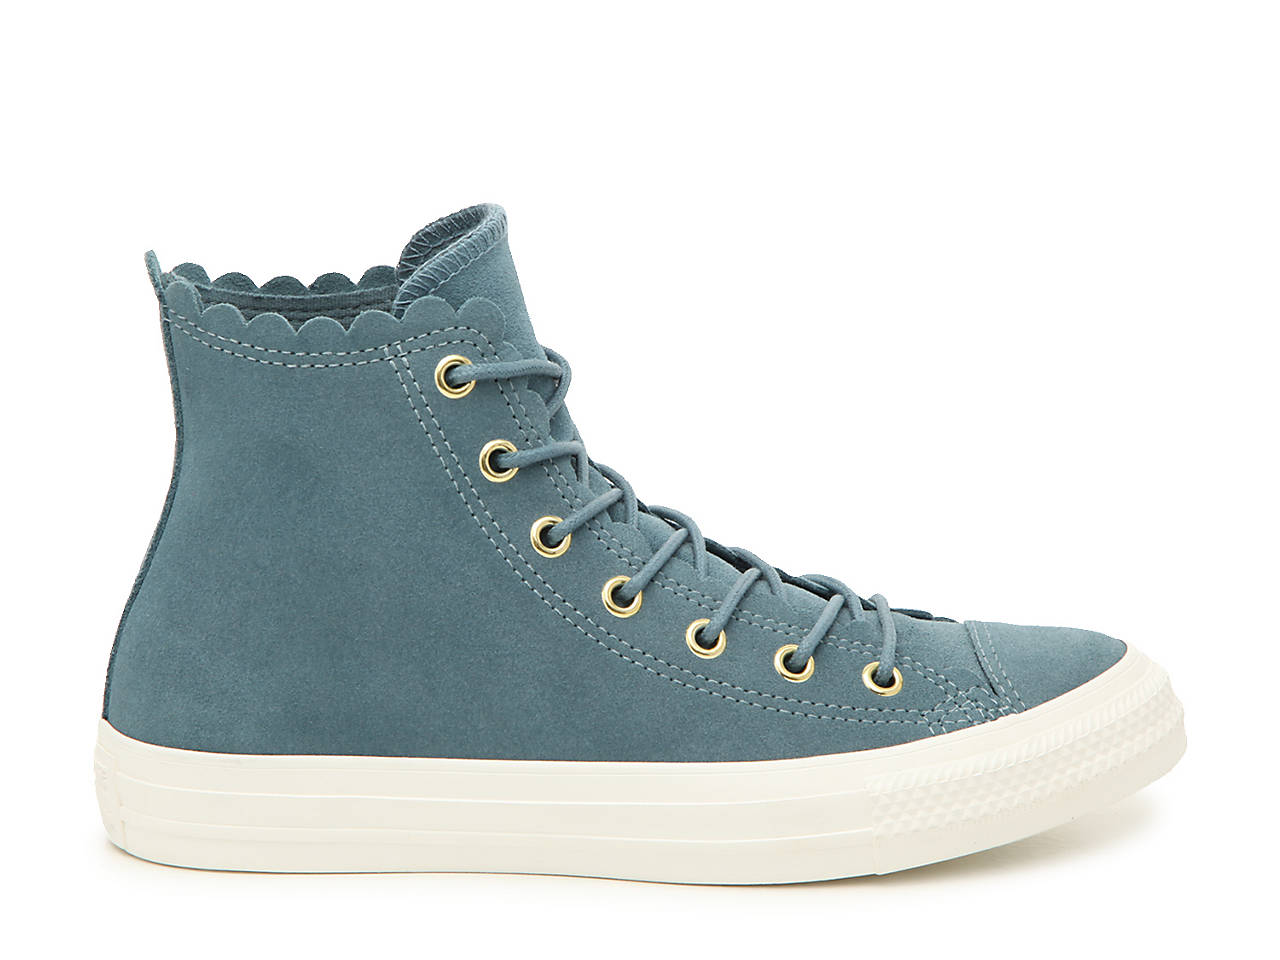 Converse Chuck Taylor All Star Scallop High-Top Sneaker - Women s ... aedfd50aa